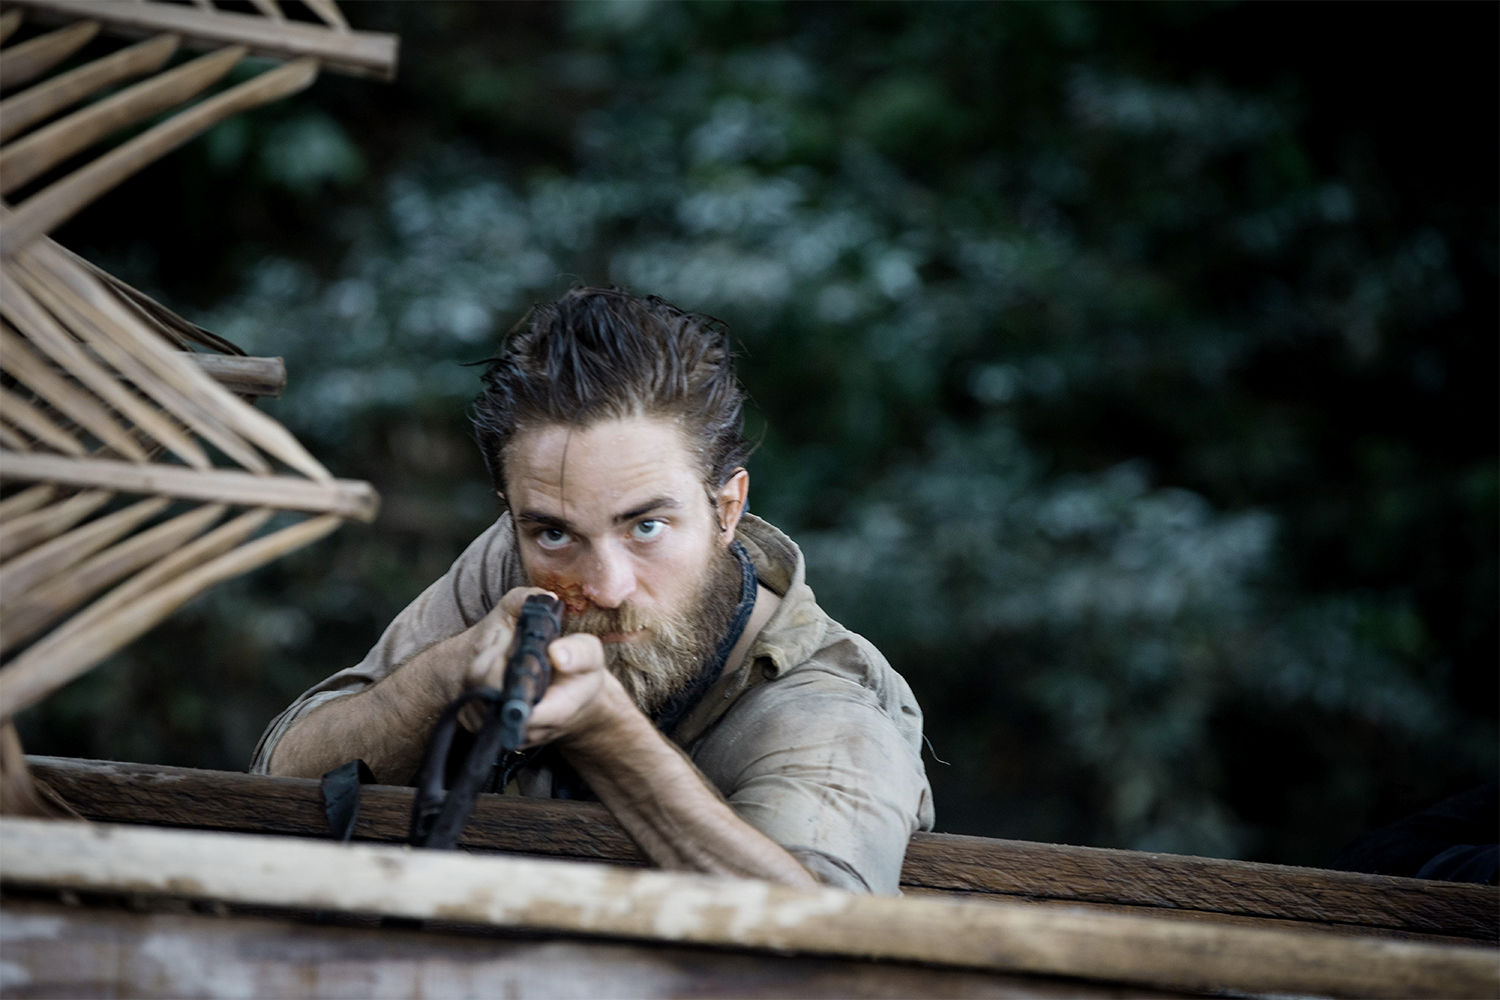 Robert Pattinson holding a rifle in the lost city of z